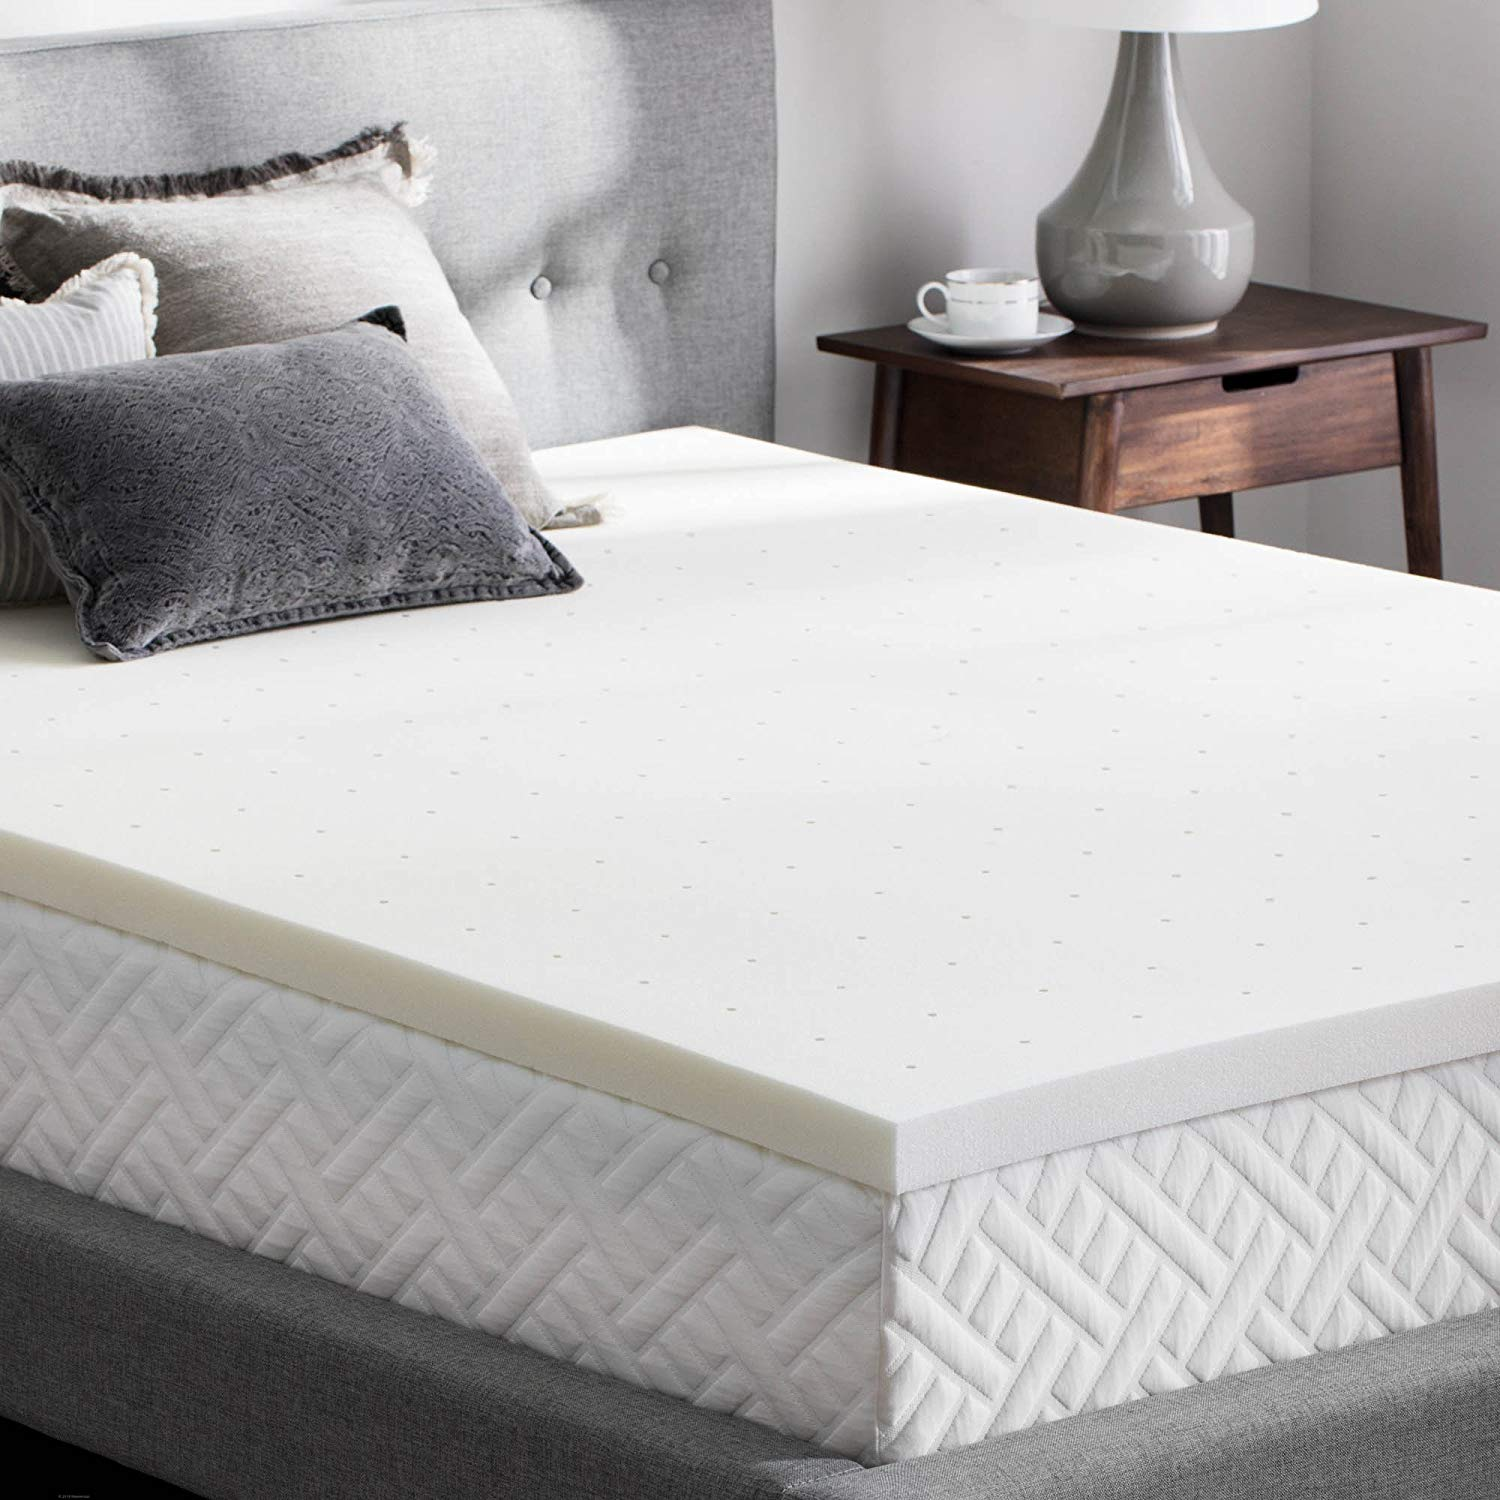 WEEKENDER Best Mattress Topper for Back Pain Review by www.snoremagazine.com